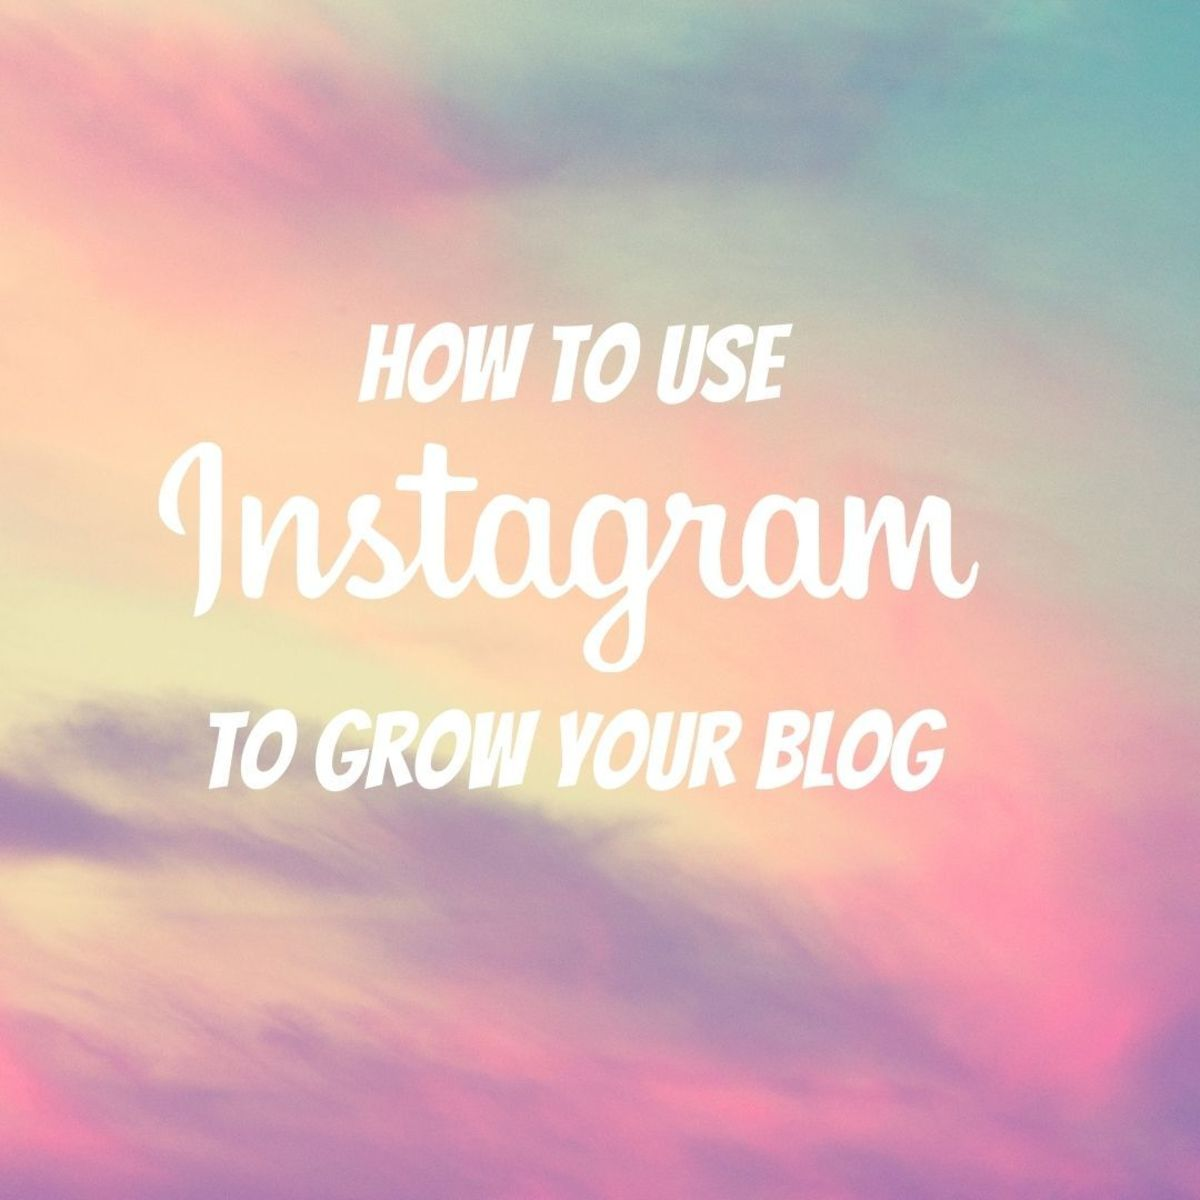 Tips and tricks for using Instagram to grow your blog